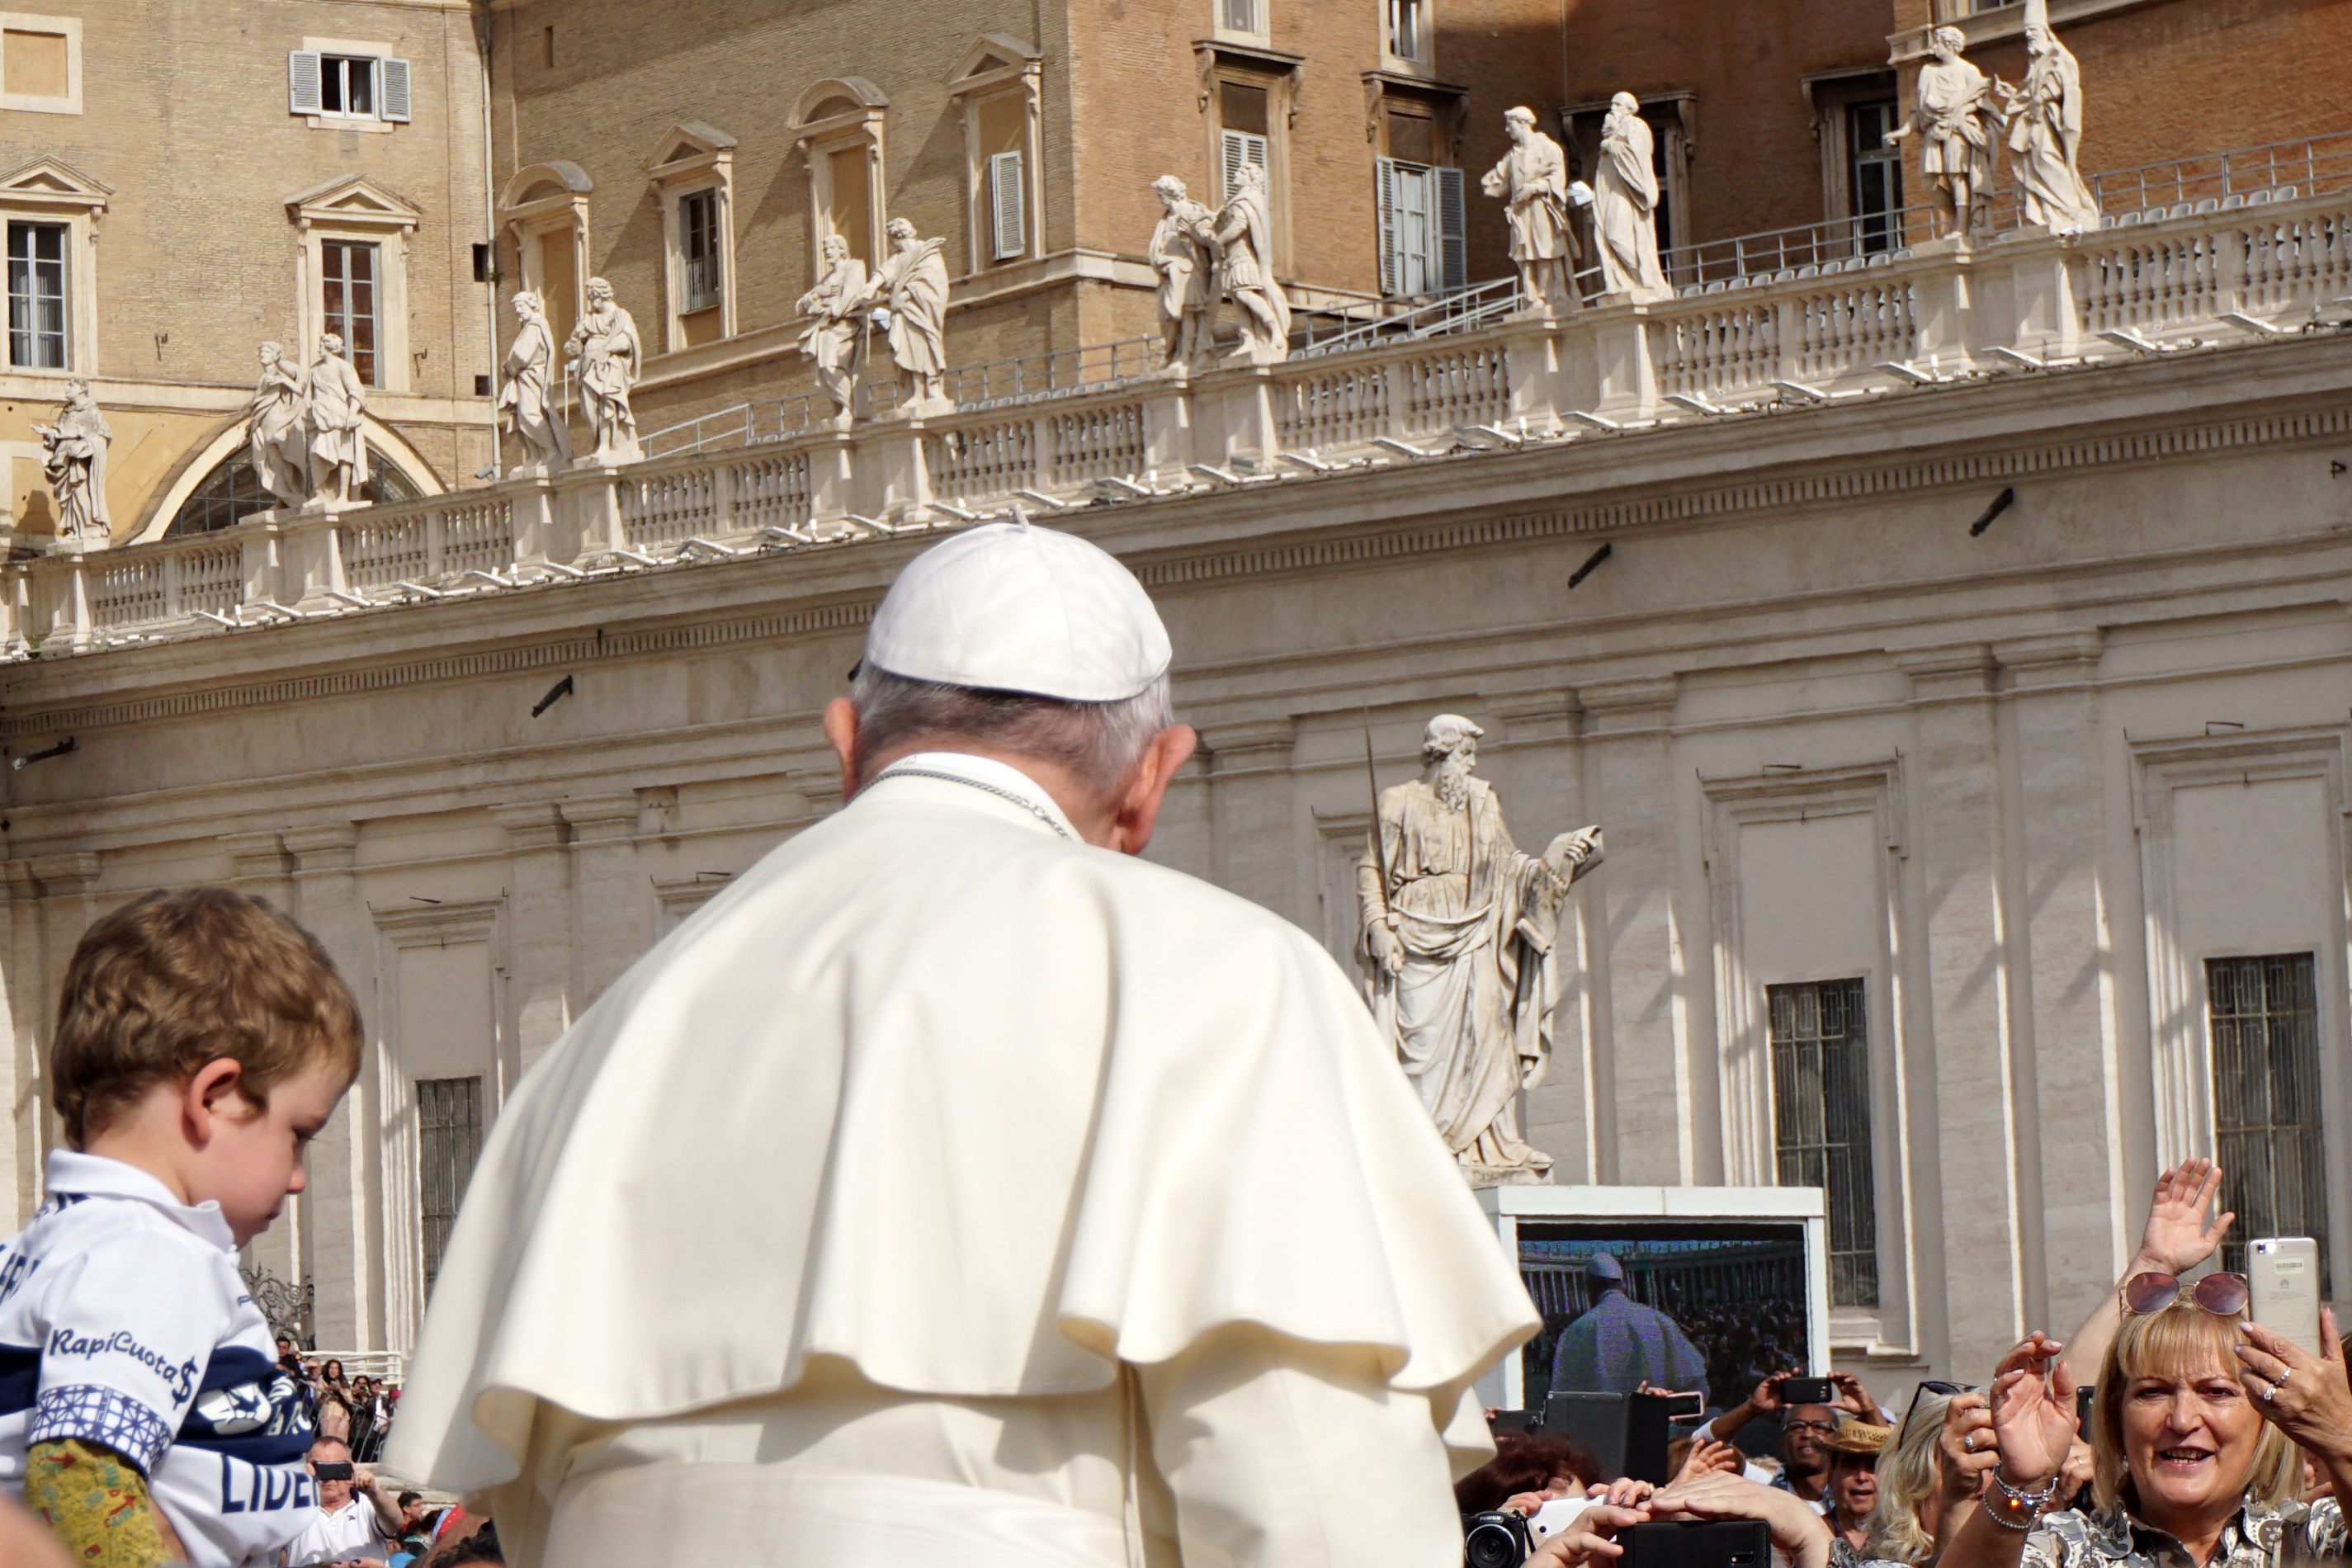 Catholic women's groups protest Vatican's gay union stance